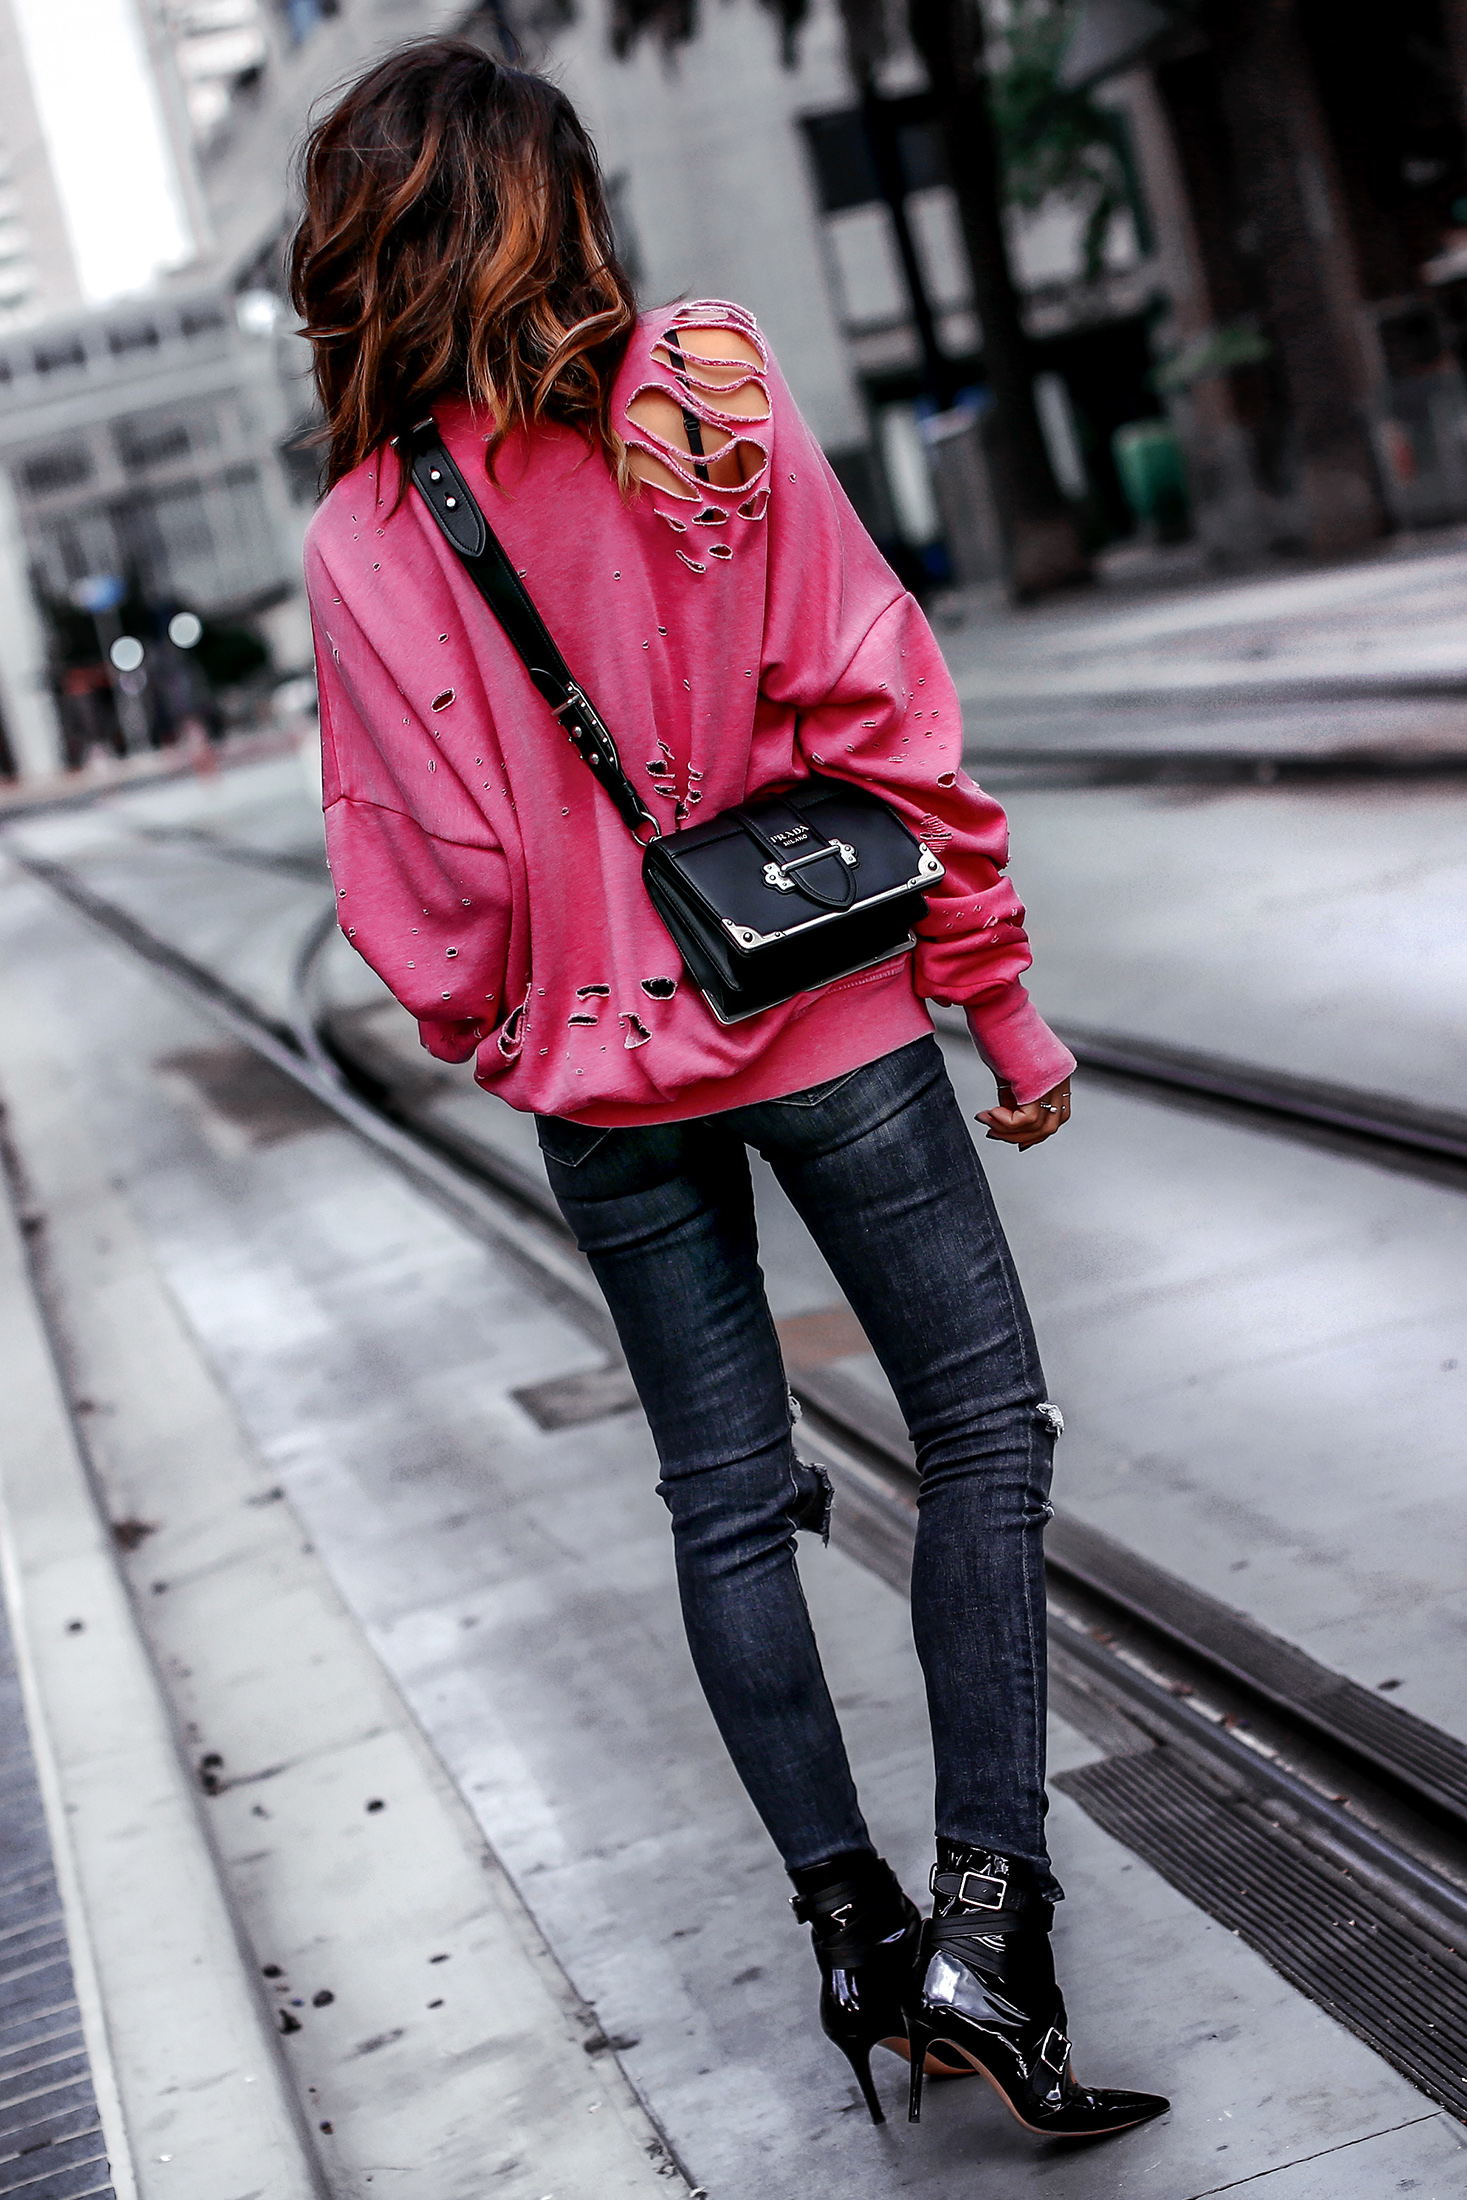 Laundry Room Distressed Sweatshirt Nordstrom Half Yearly Sale Streetstyle Fashion Blogger Prada Cahier.jpg